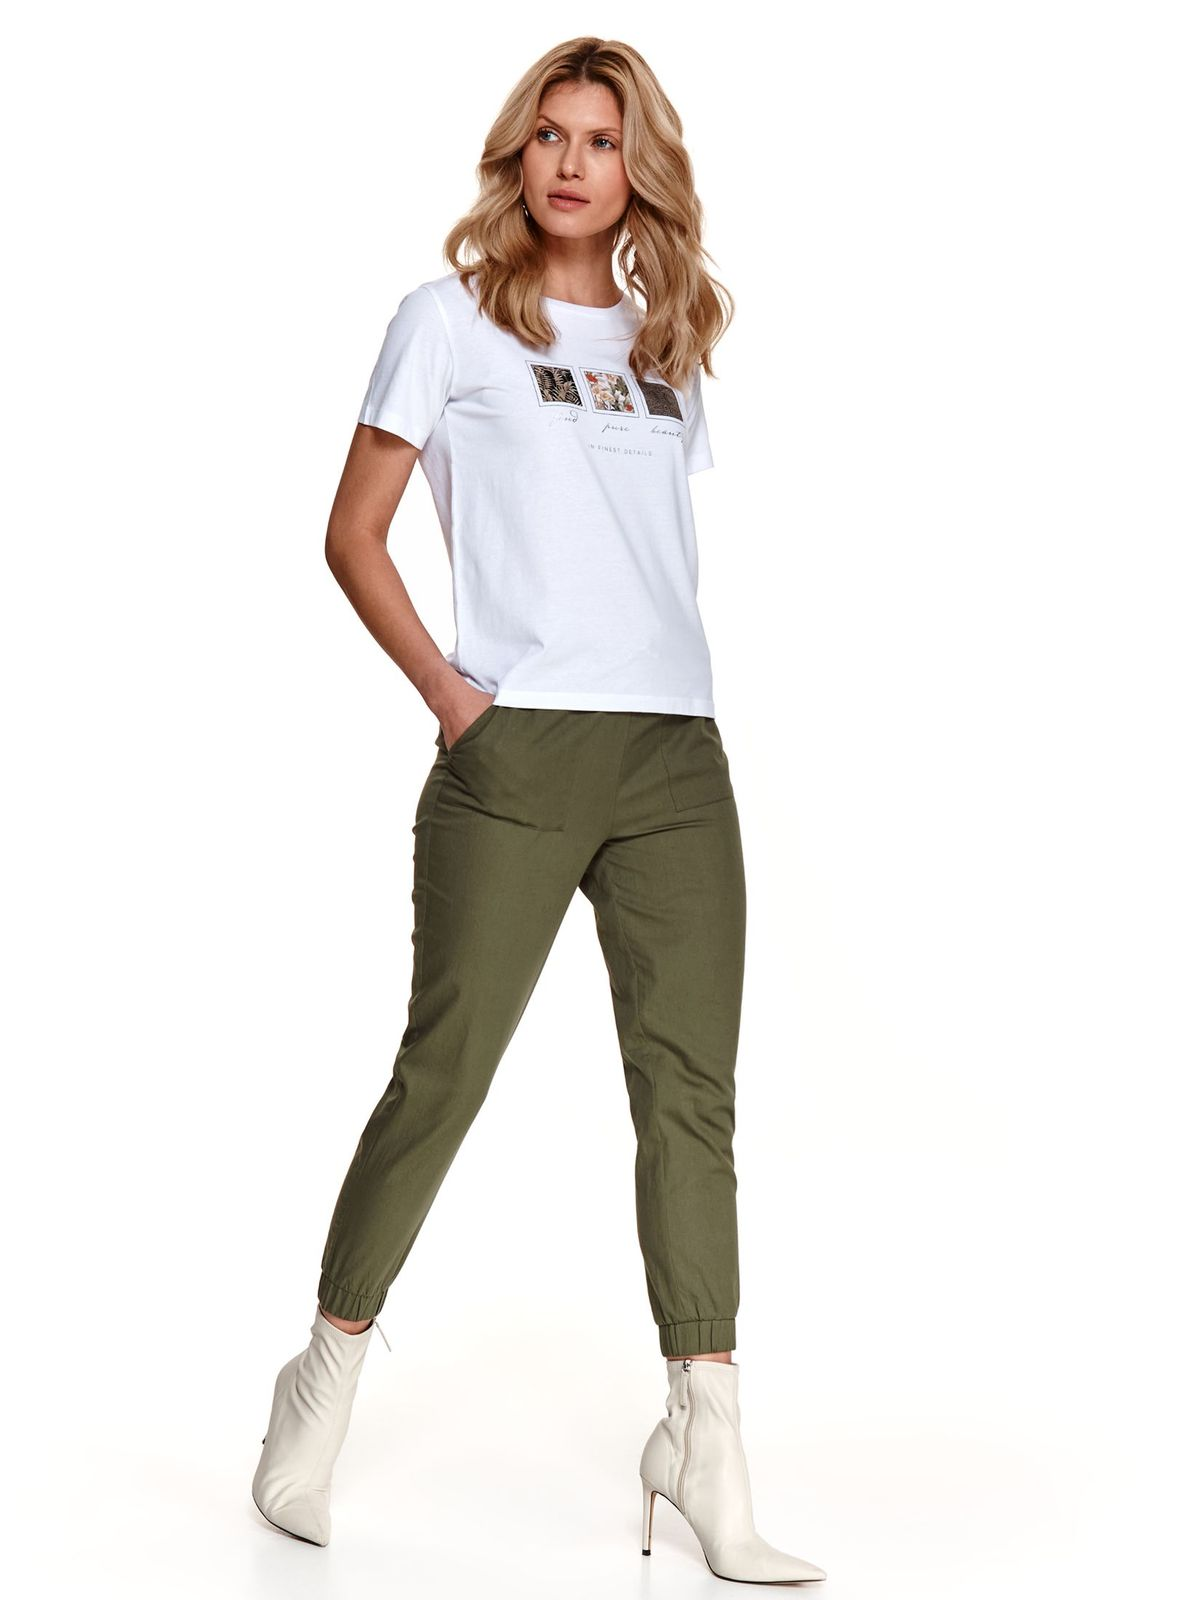 White t-shirt with graphic details loose fit